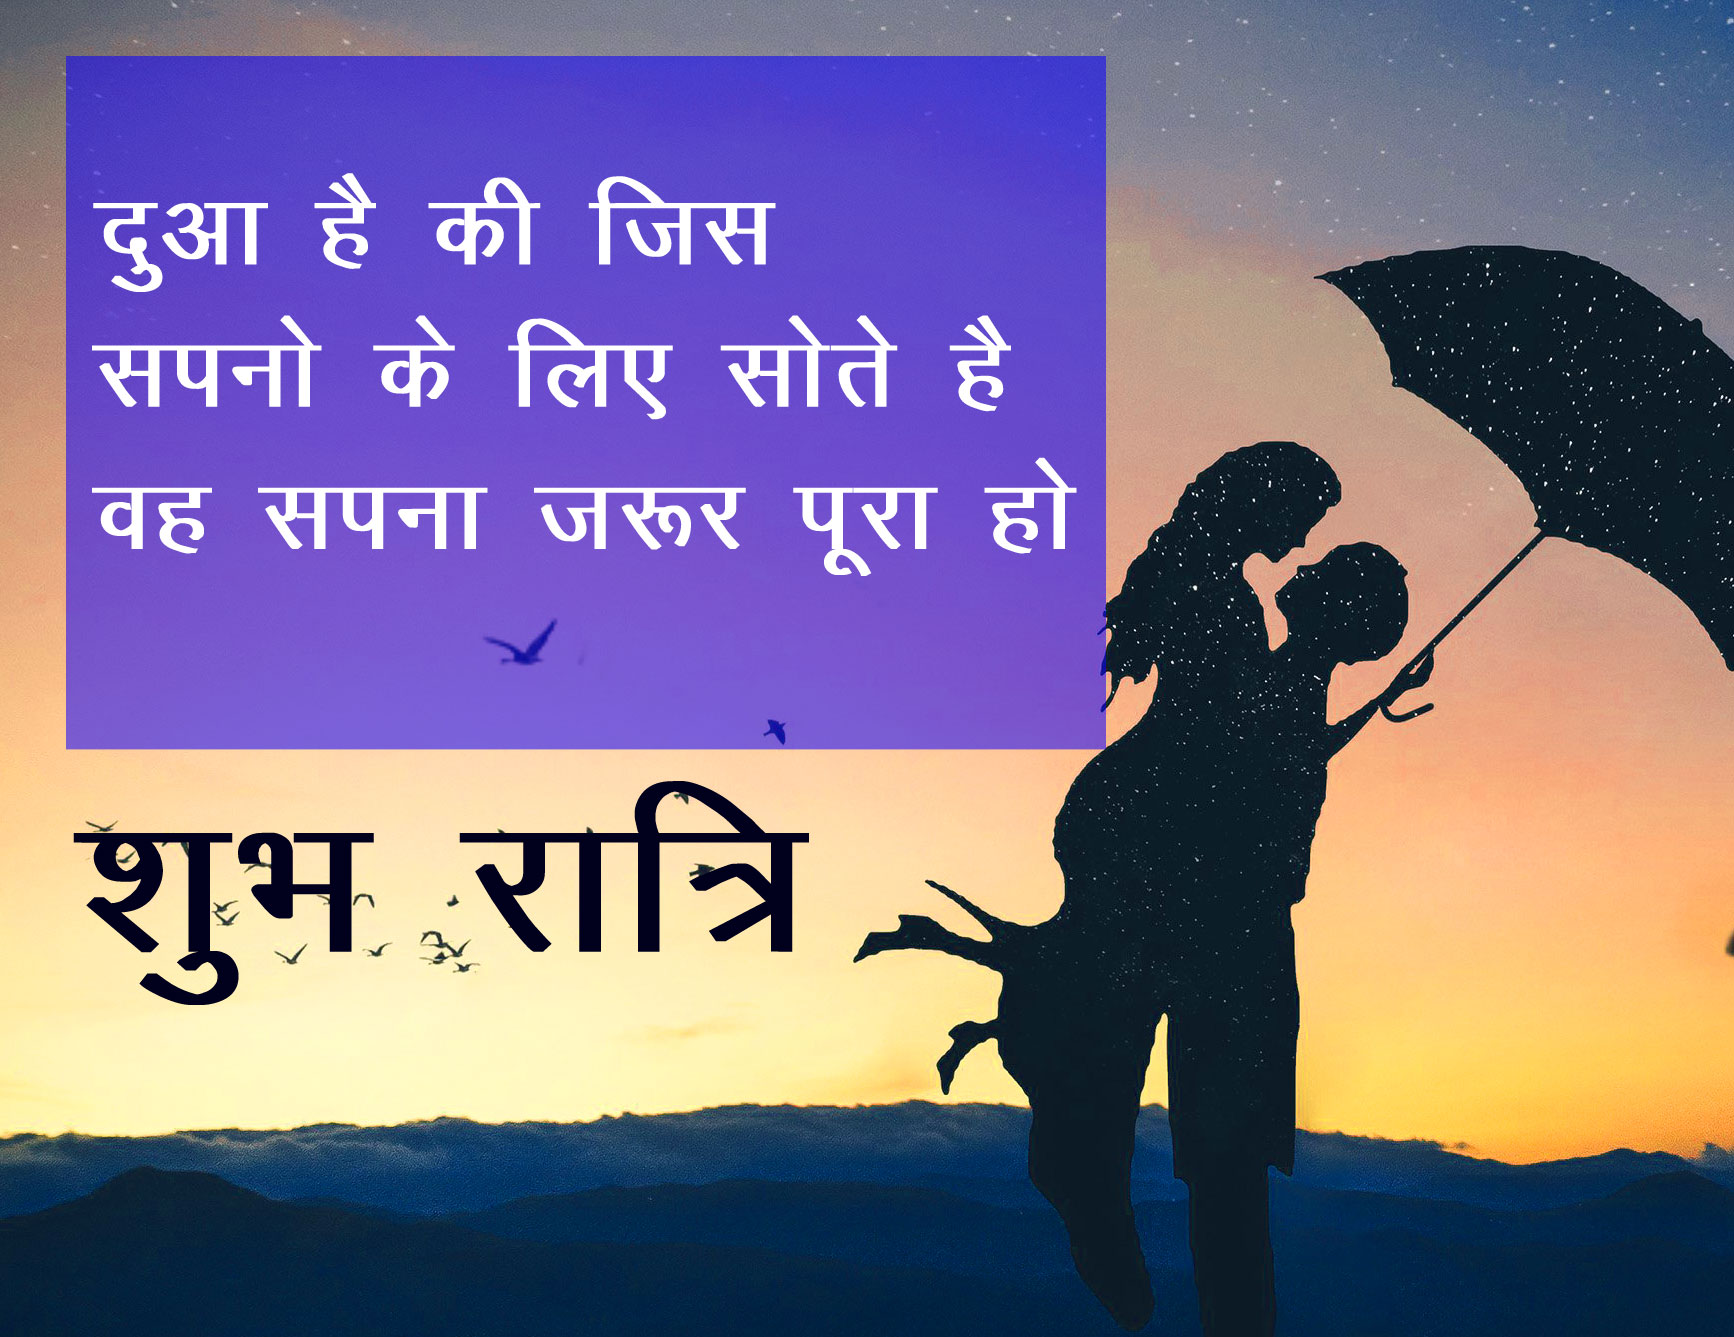 985+ Hindi Shubh Ratri Images Download [ Best Collection ]